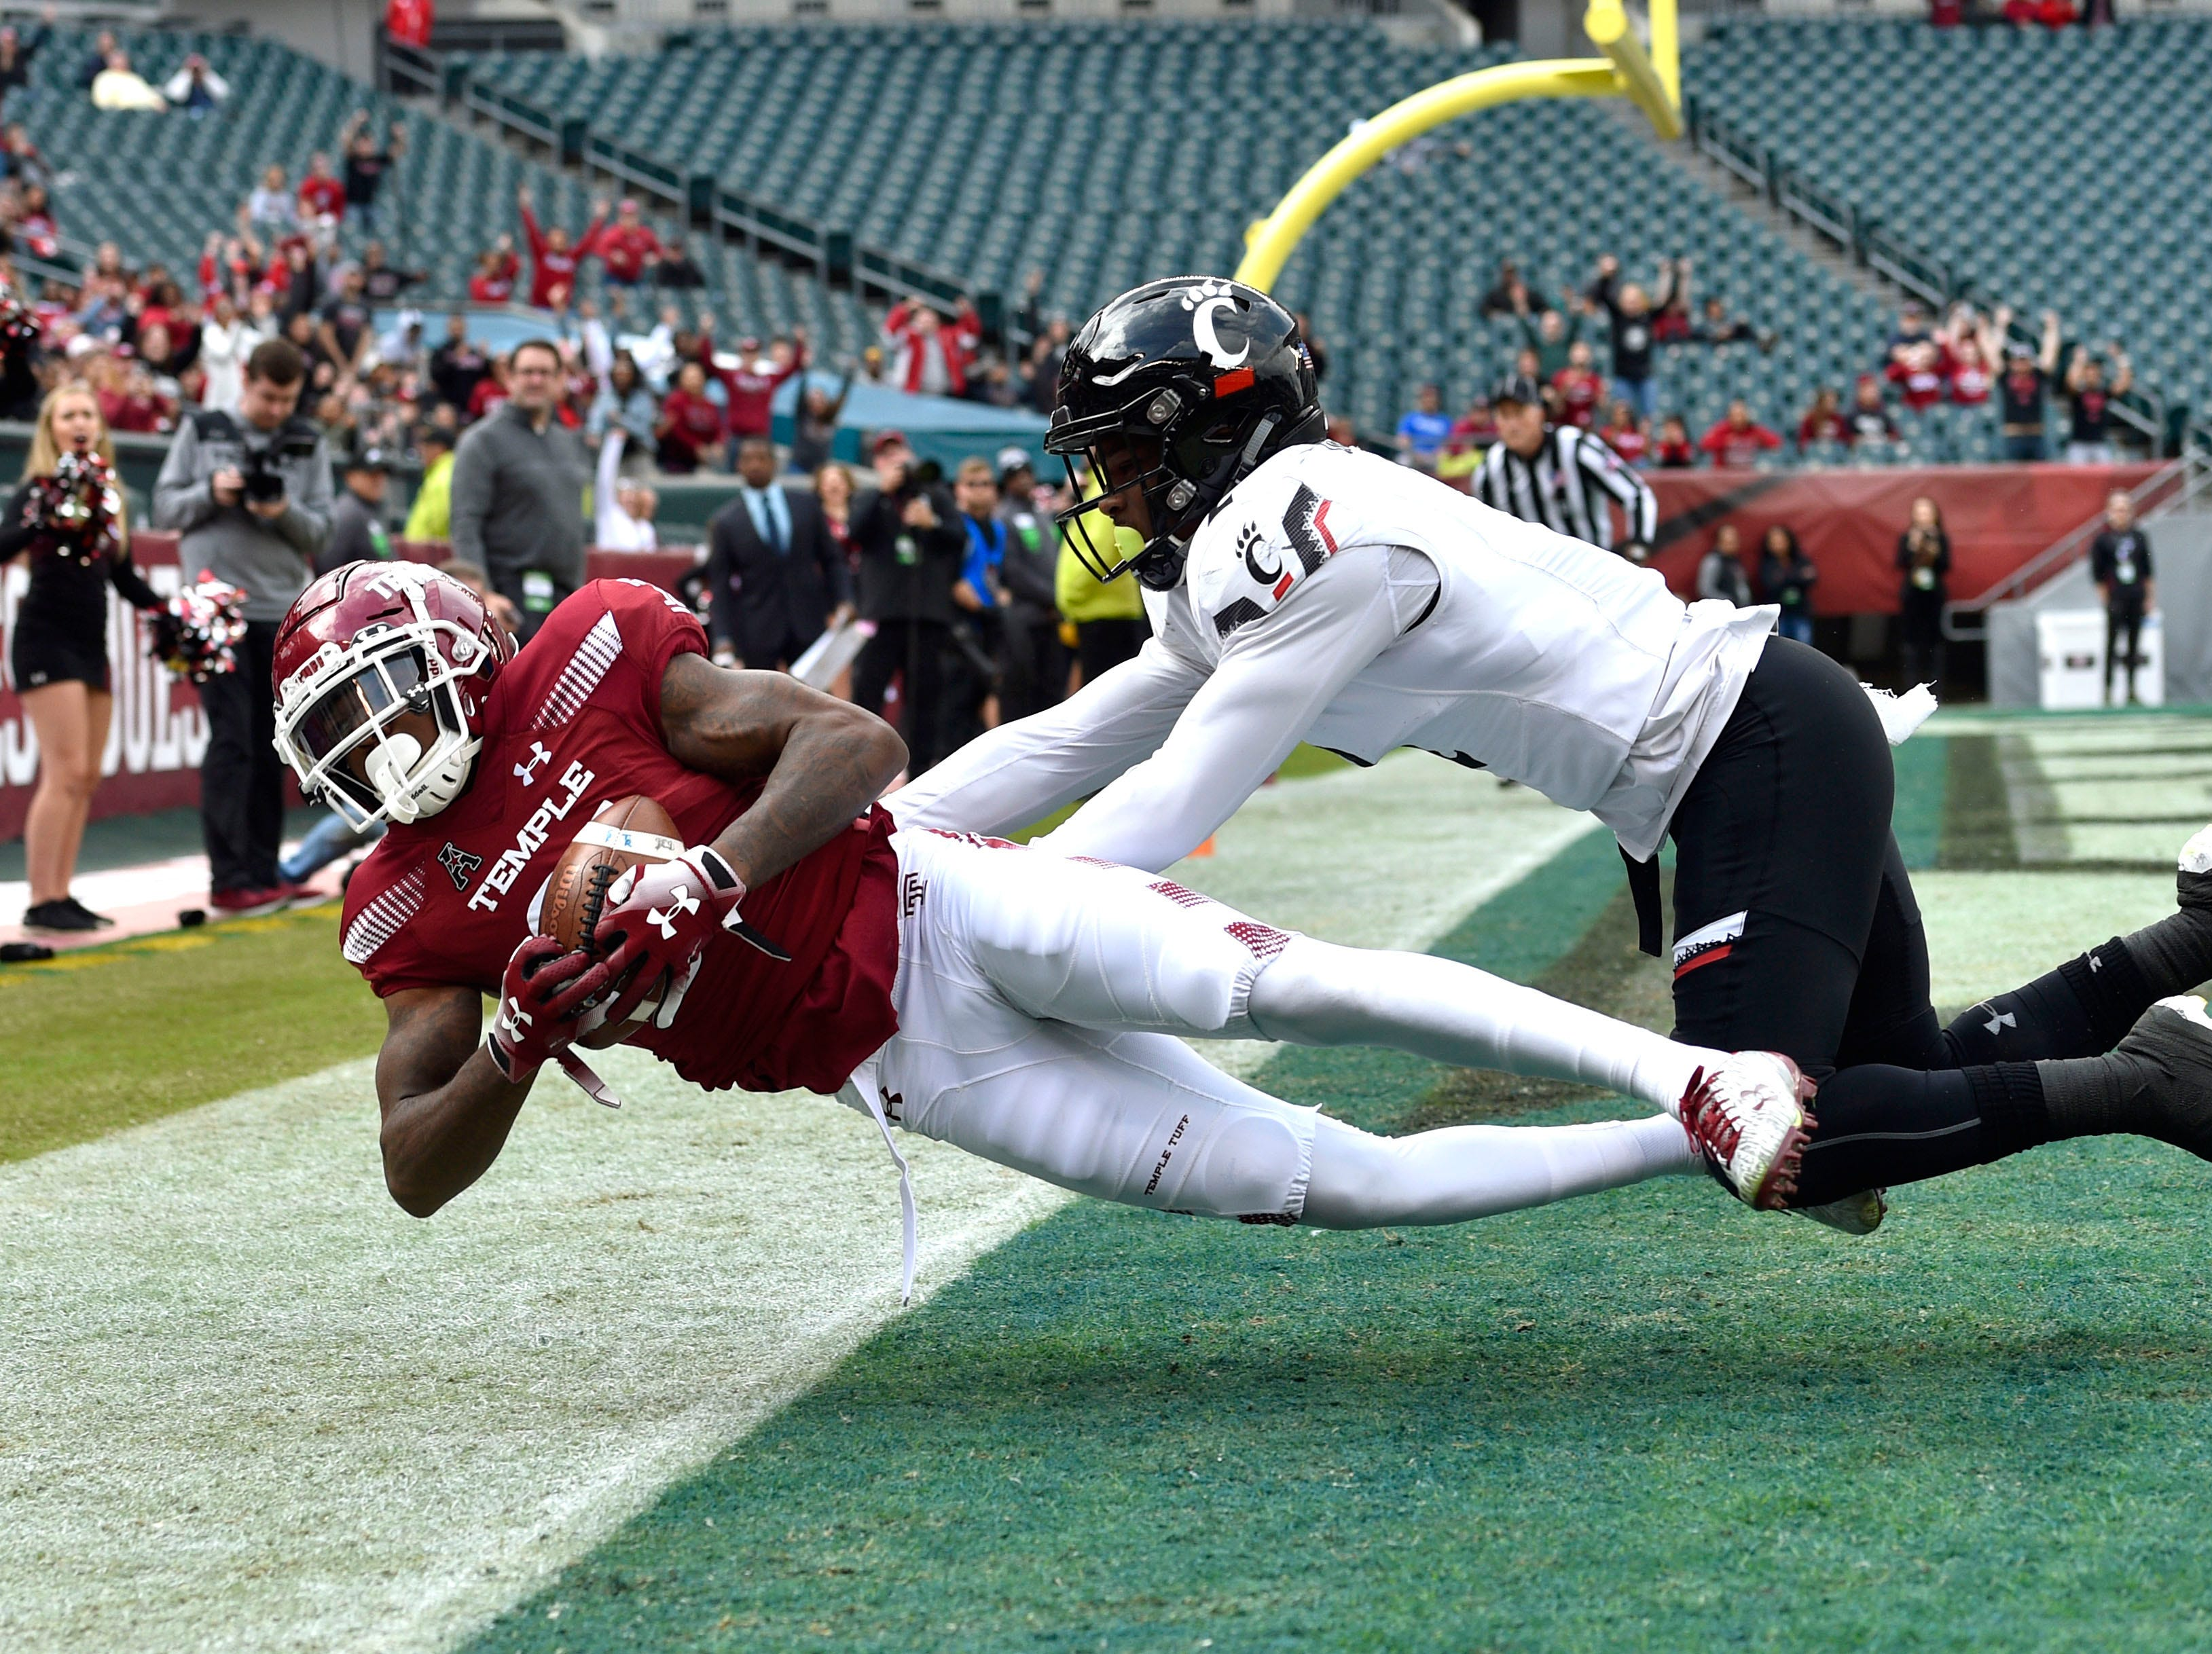 Temple Owls wide receiver Randle Jones (81) catches the ball for a touchdown past Cincinnati Bearcats cornerback Tyrell Gilbert (2) during the first quarter at Lincoln Financial Field.